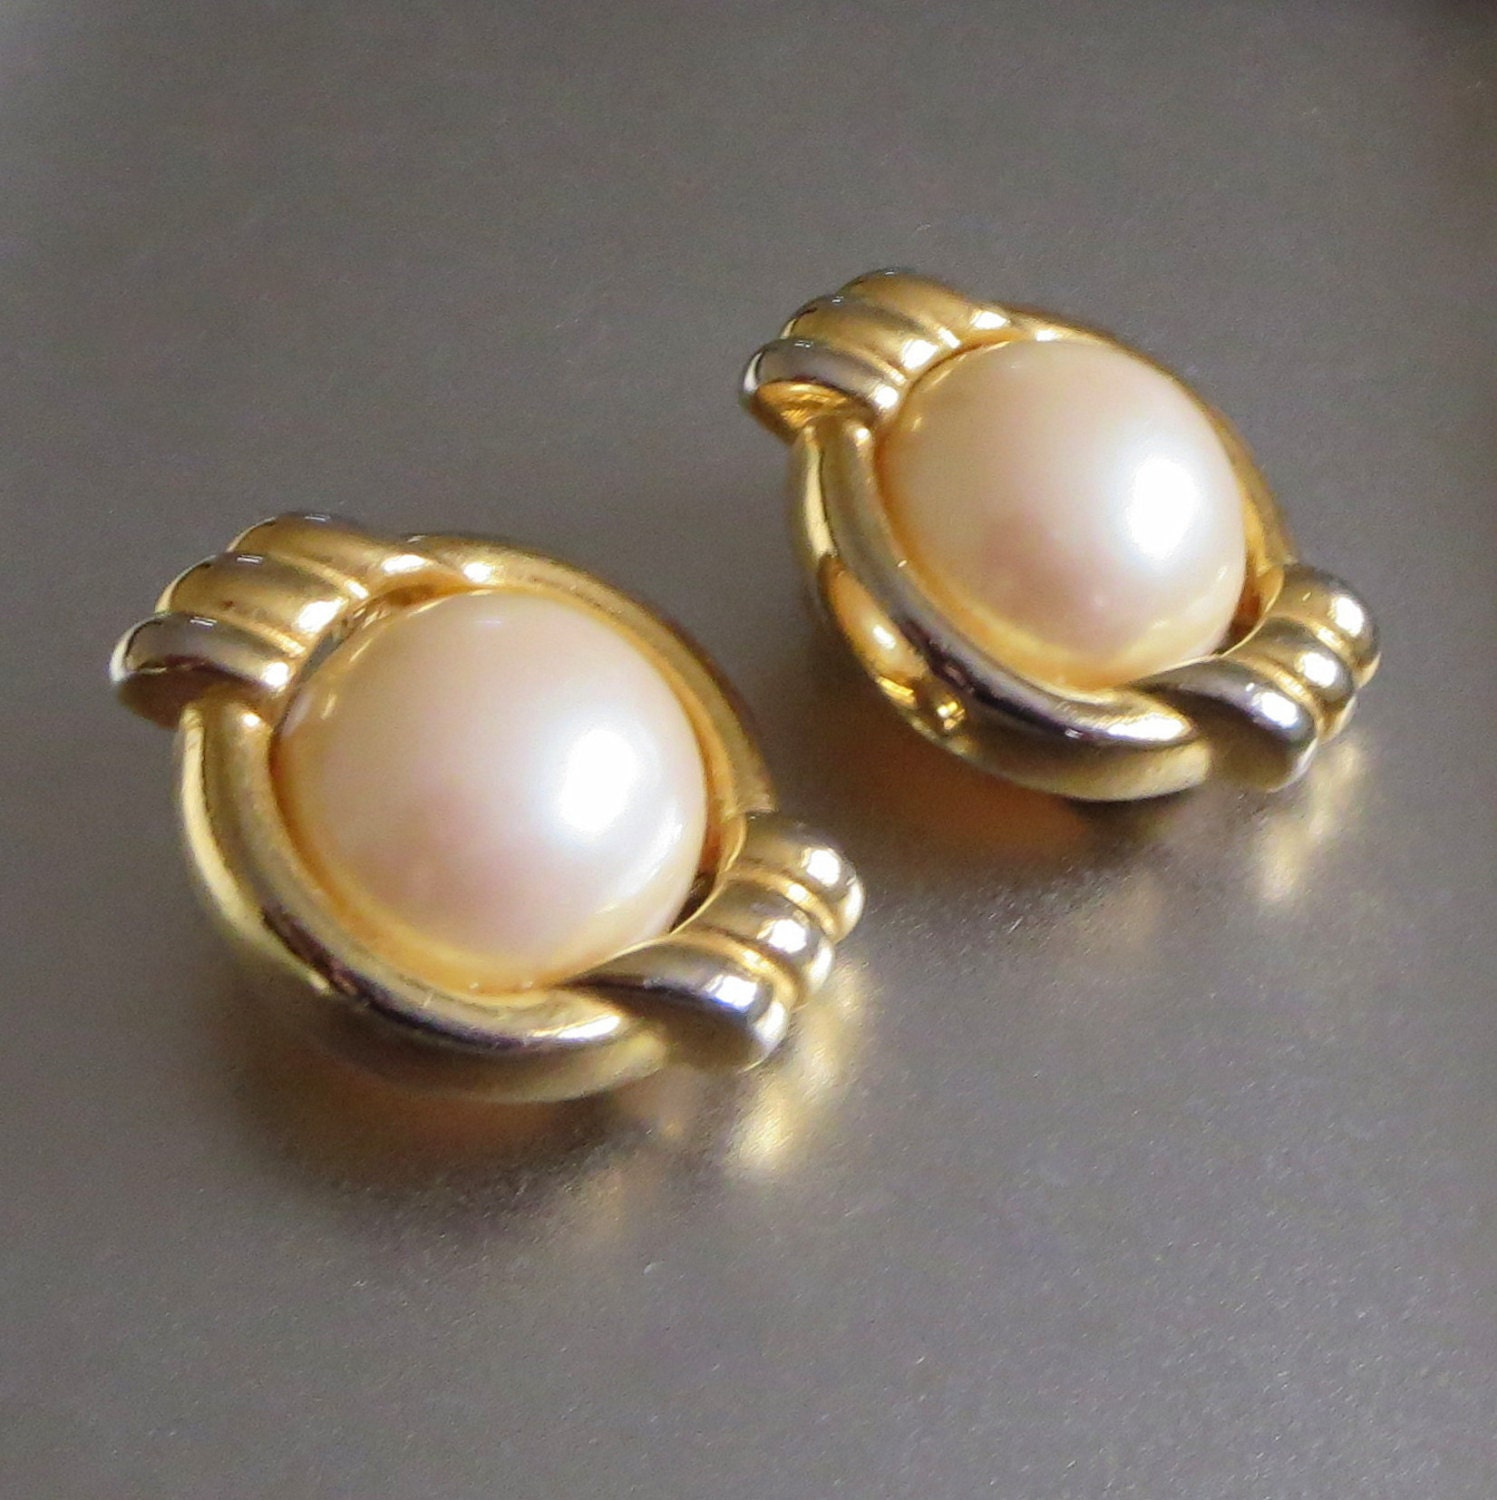 Beautiful pearl earrings for a formal look pictures